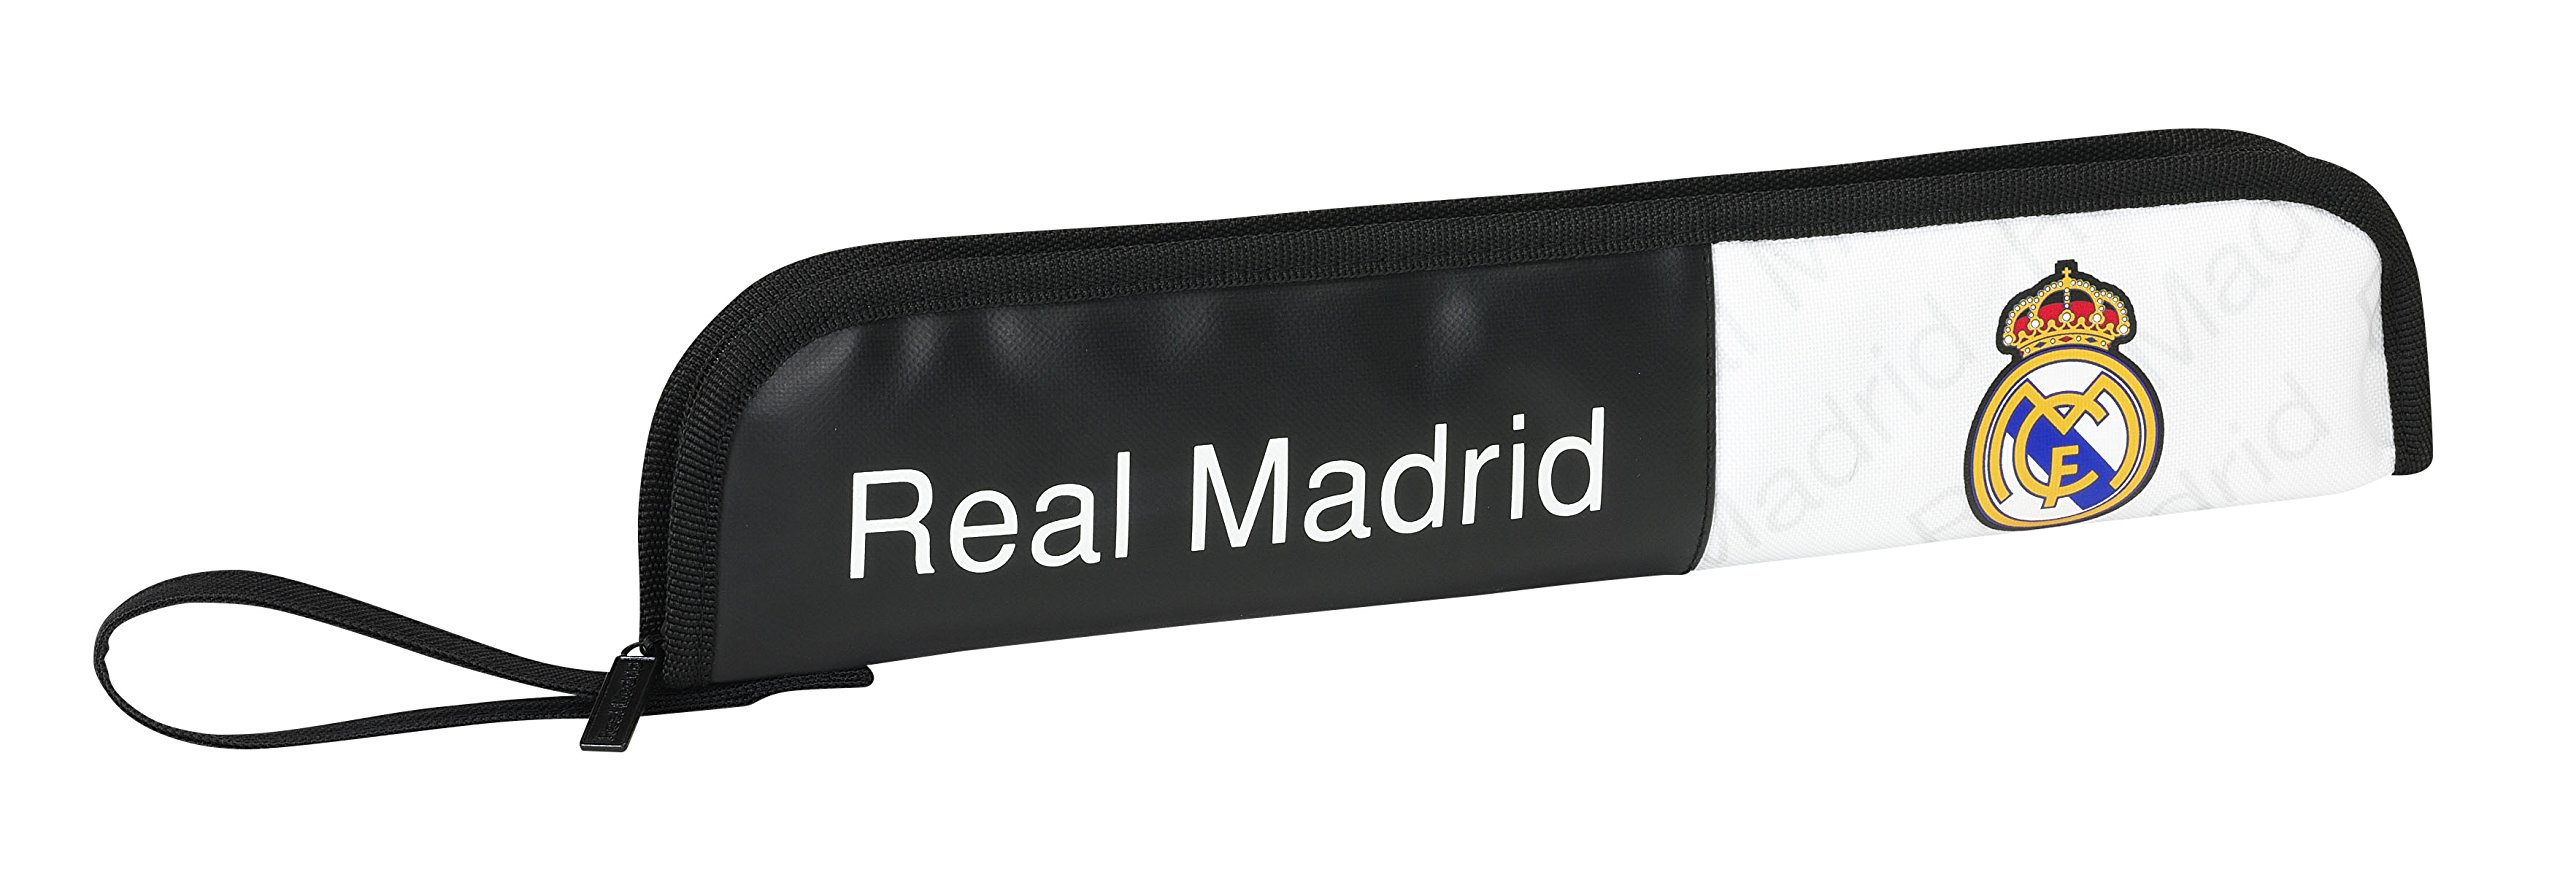 Real Madrid Portaflautas (SAFTA 811557284), Multicolor, 37 cm